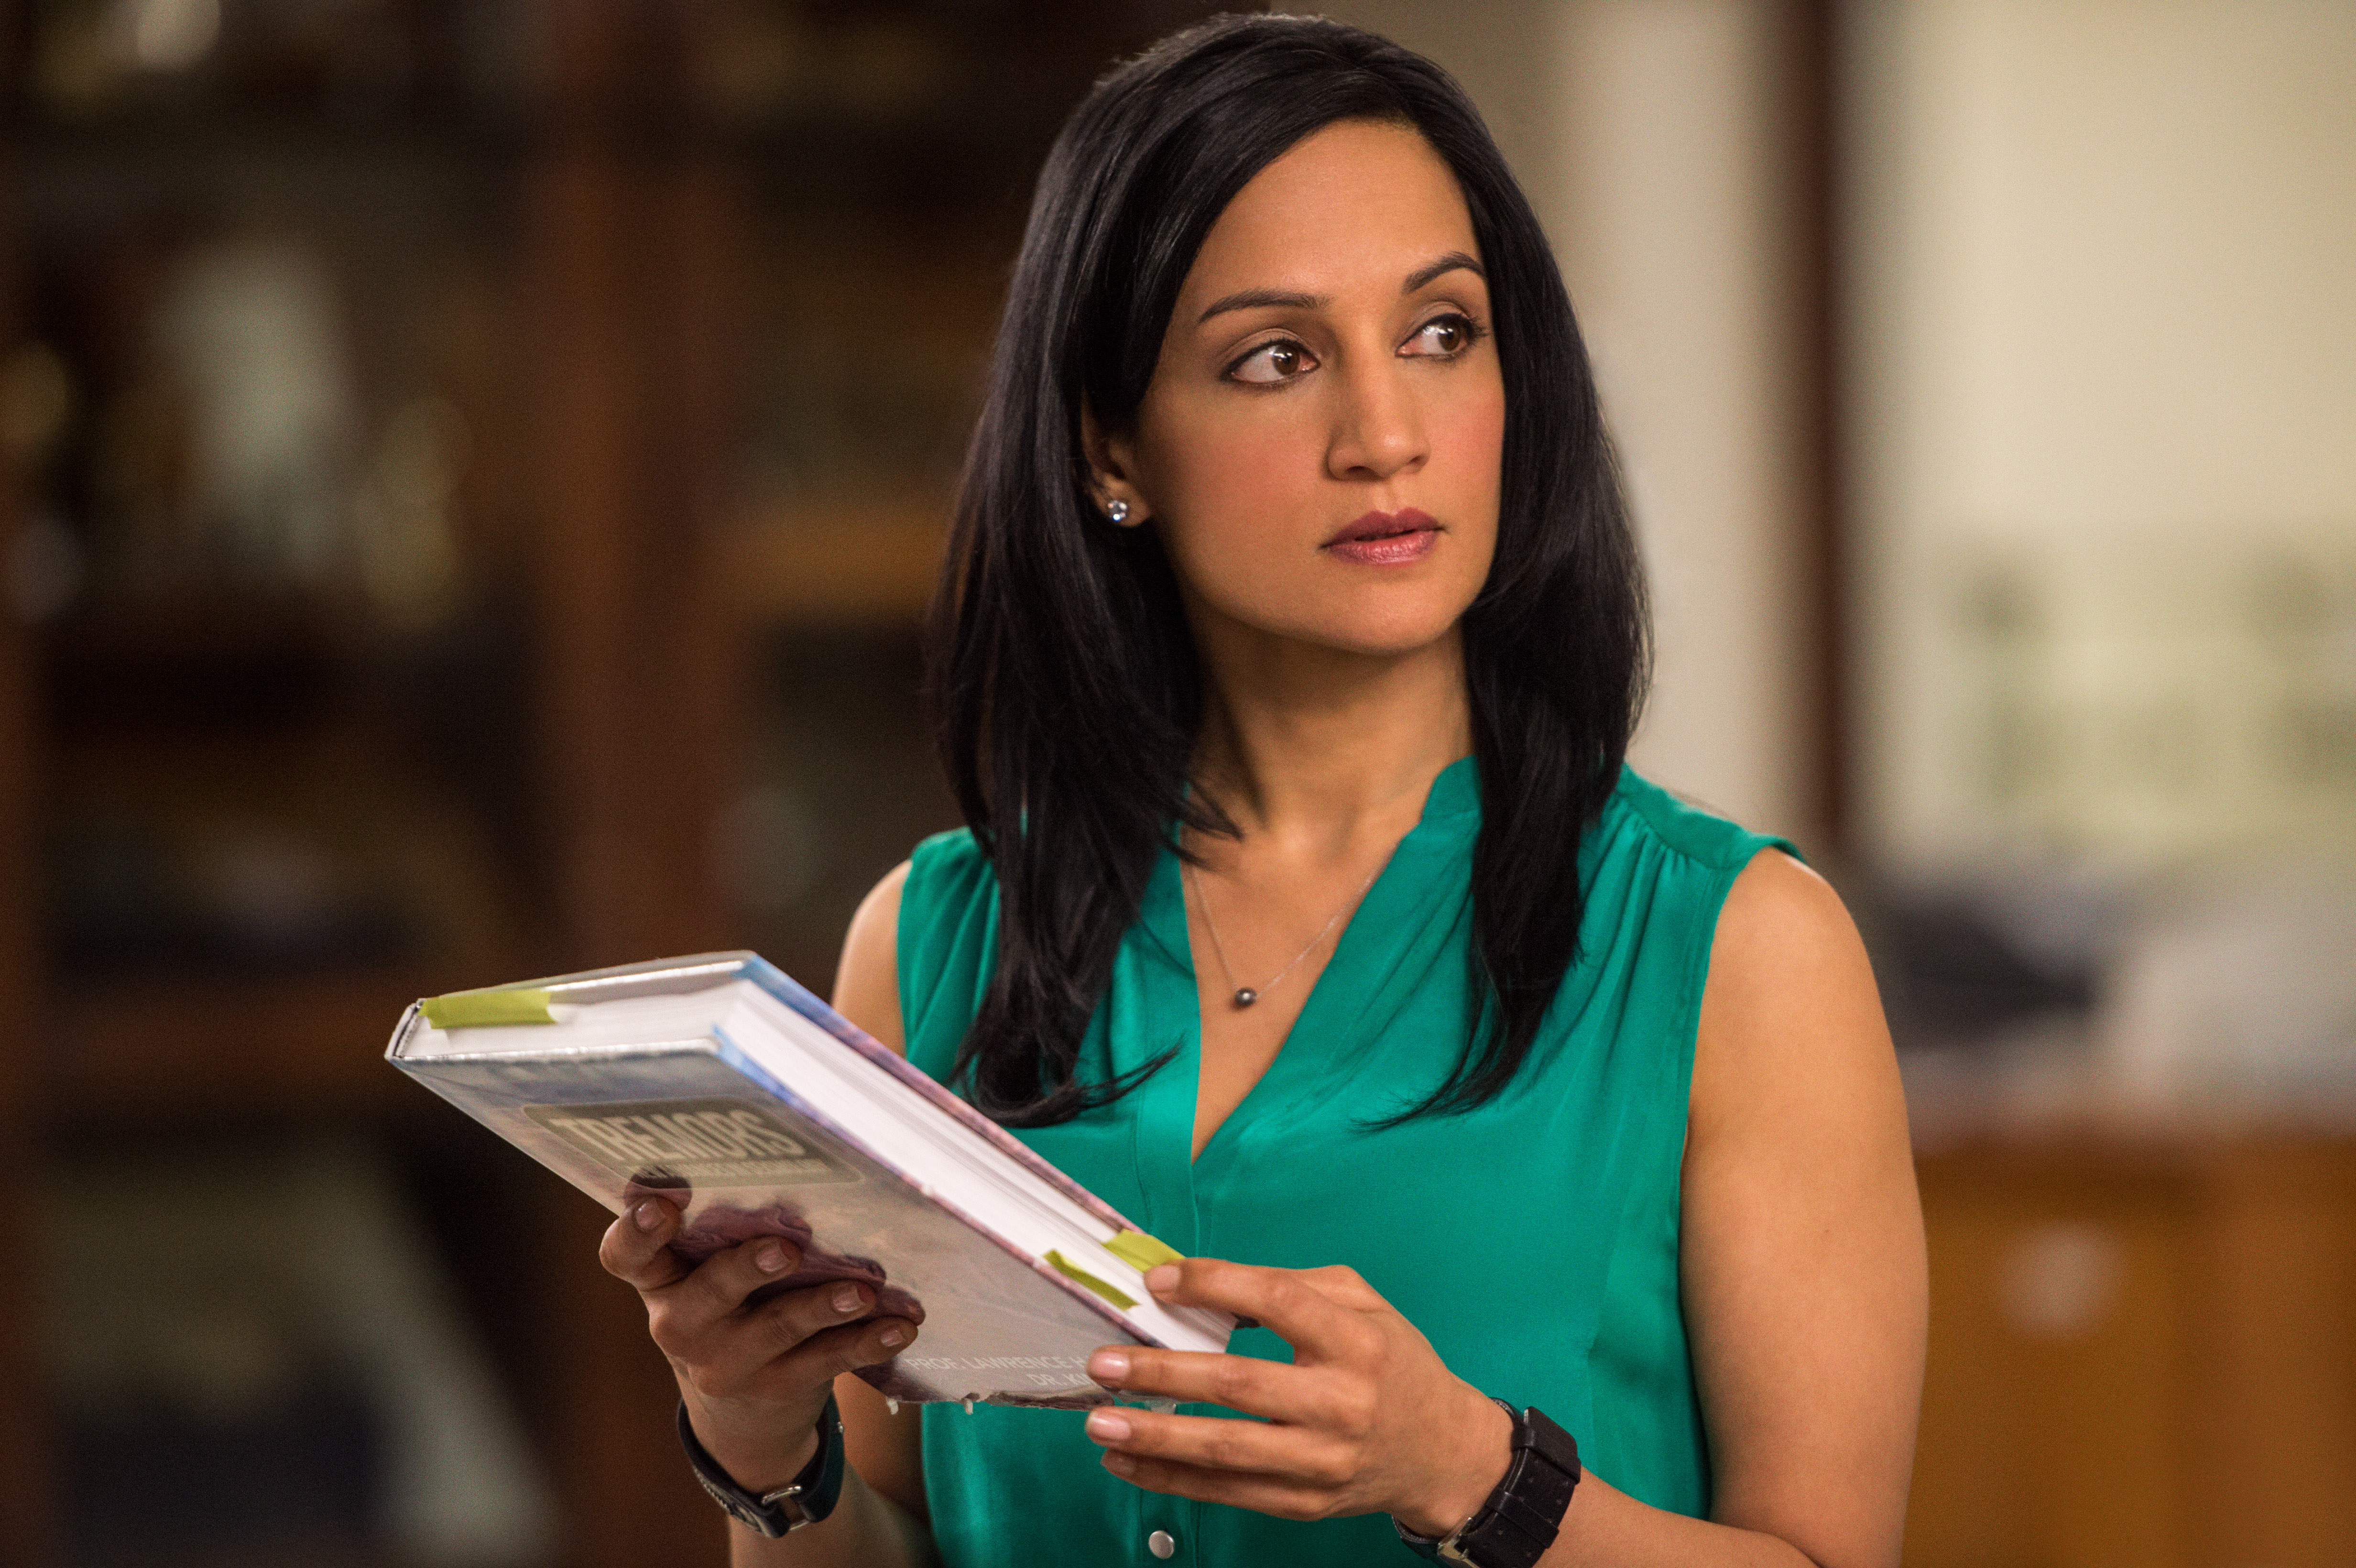 archie panjabi scenearchie panjabi kiss, archie panjabi bollywood, archie panjabi interview, archie panjabi photos, archie panjabi scene, archie panjabi blindspot, archie panjabi filmography, archie panjabi young, archie panjabi the good wife, archie panjabi accent, archie panjabi instagram, archie panjabi fansite, archie panjabi wikipédia, archie panjabi twitter, archie panjabi altezza